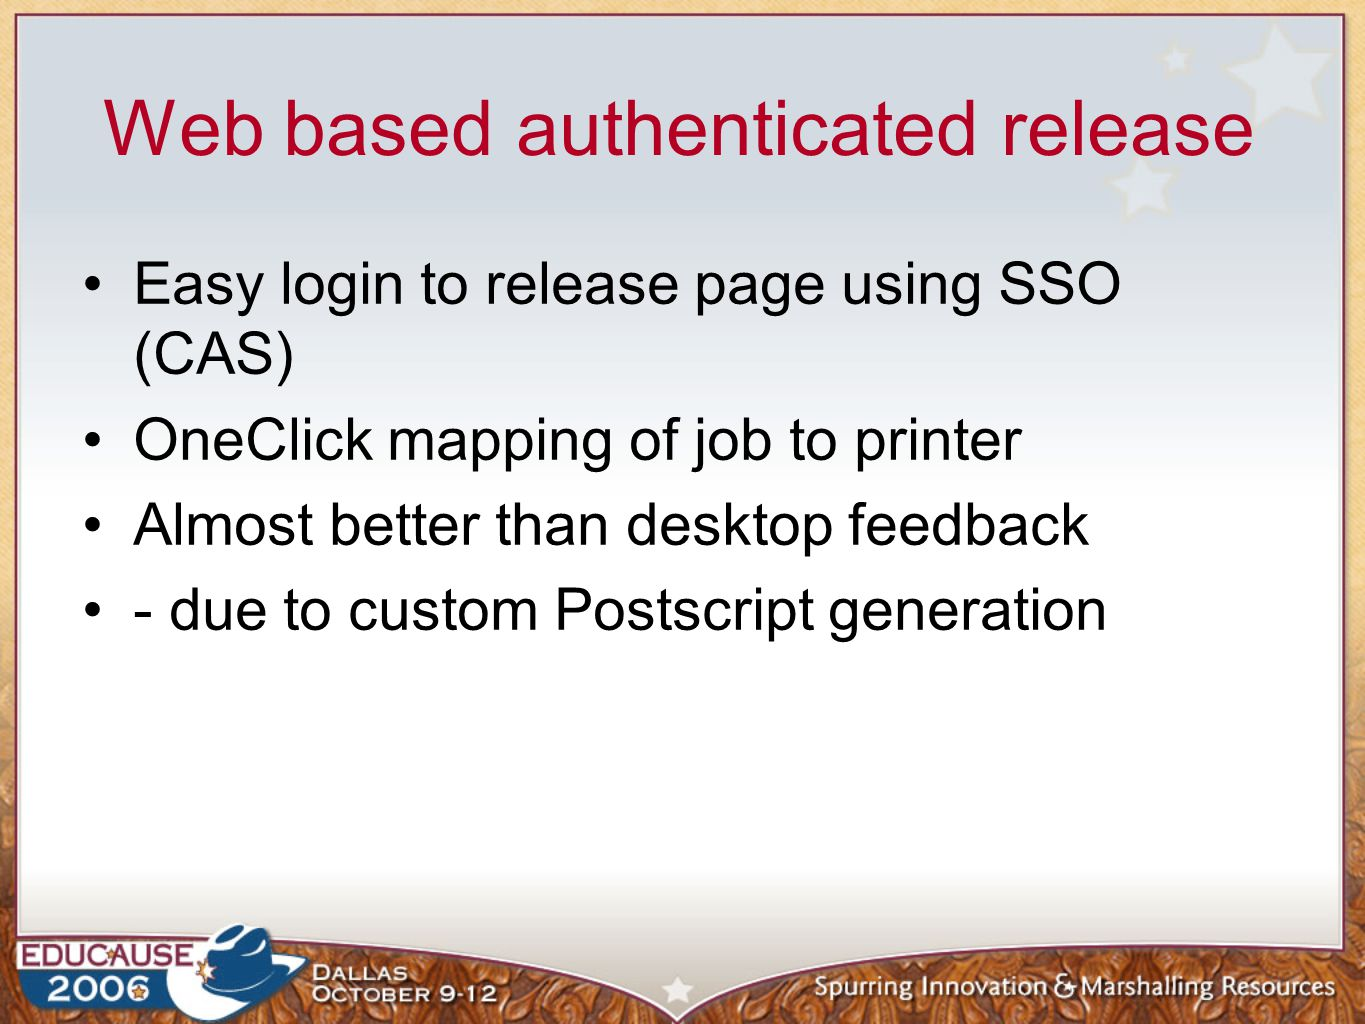 Web based authenticated release Easy login to release page using SSO (CAS) OneClick mapping of job to printer Almost better than desktop feedback - due to custom Postscript generation